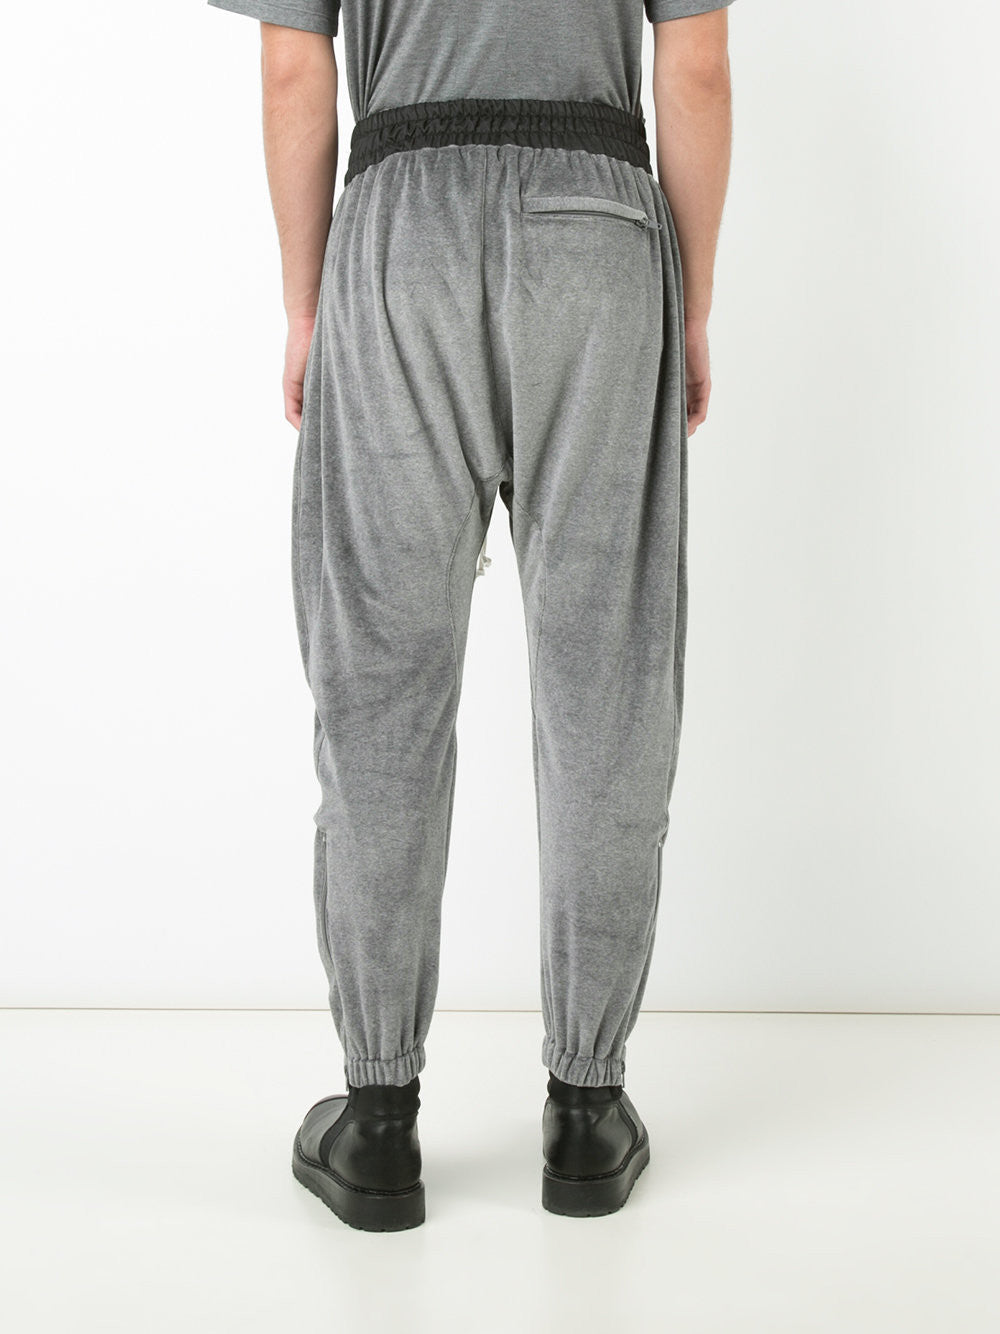 Velour Track Pant | 170101007 GRY VLR TRACK PANT